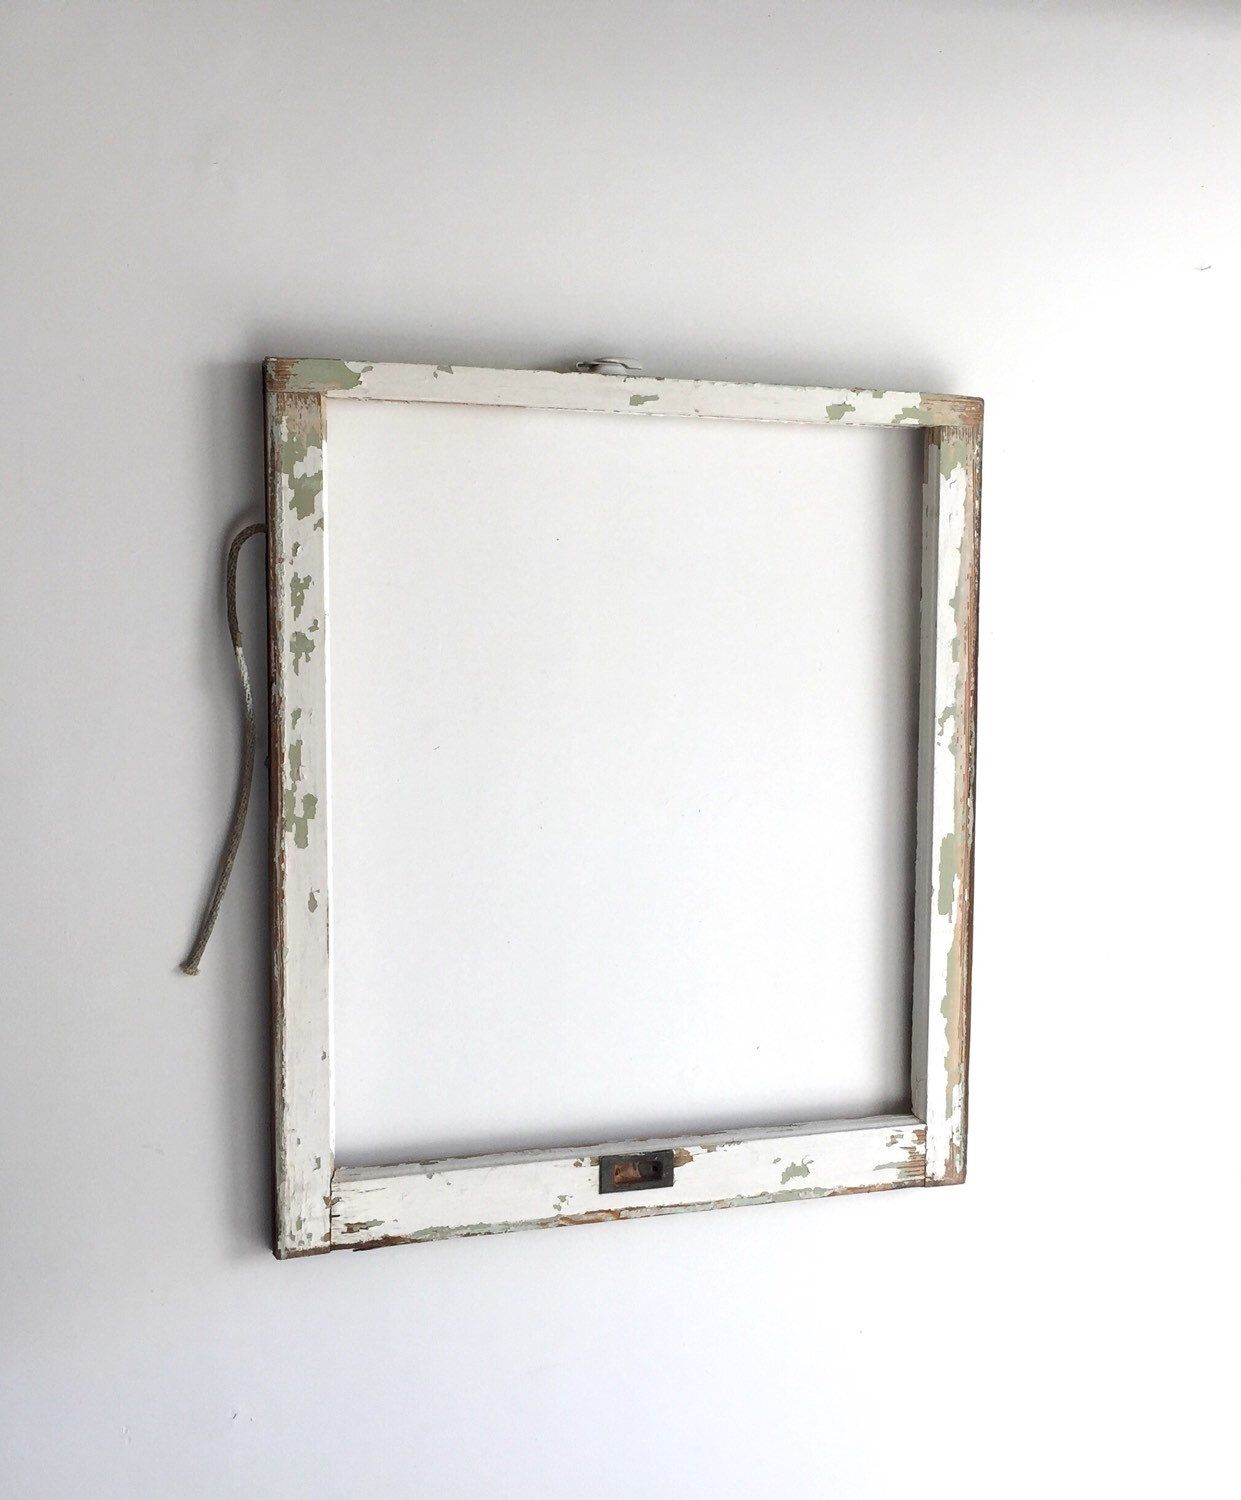 Vintage 1 Pane Window Frame No Glass 28 X 32 White Rustic Antique Wood Wedding Engagement Hom Rustic Window Frame Rustic Picture Frames Rustic Window